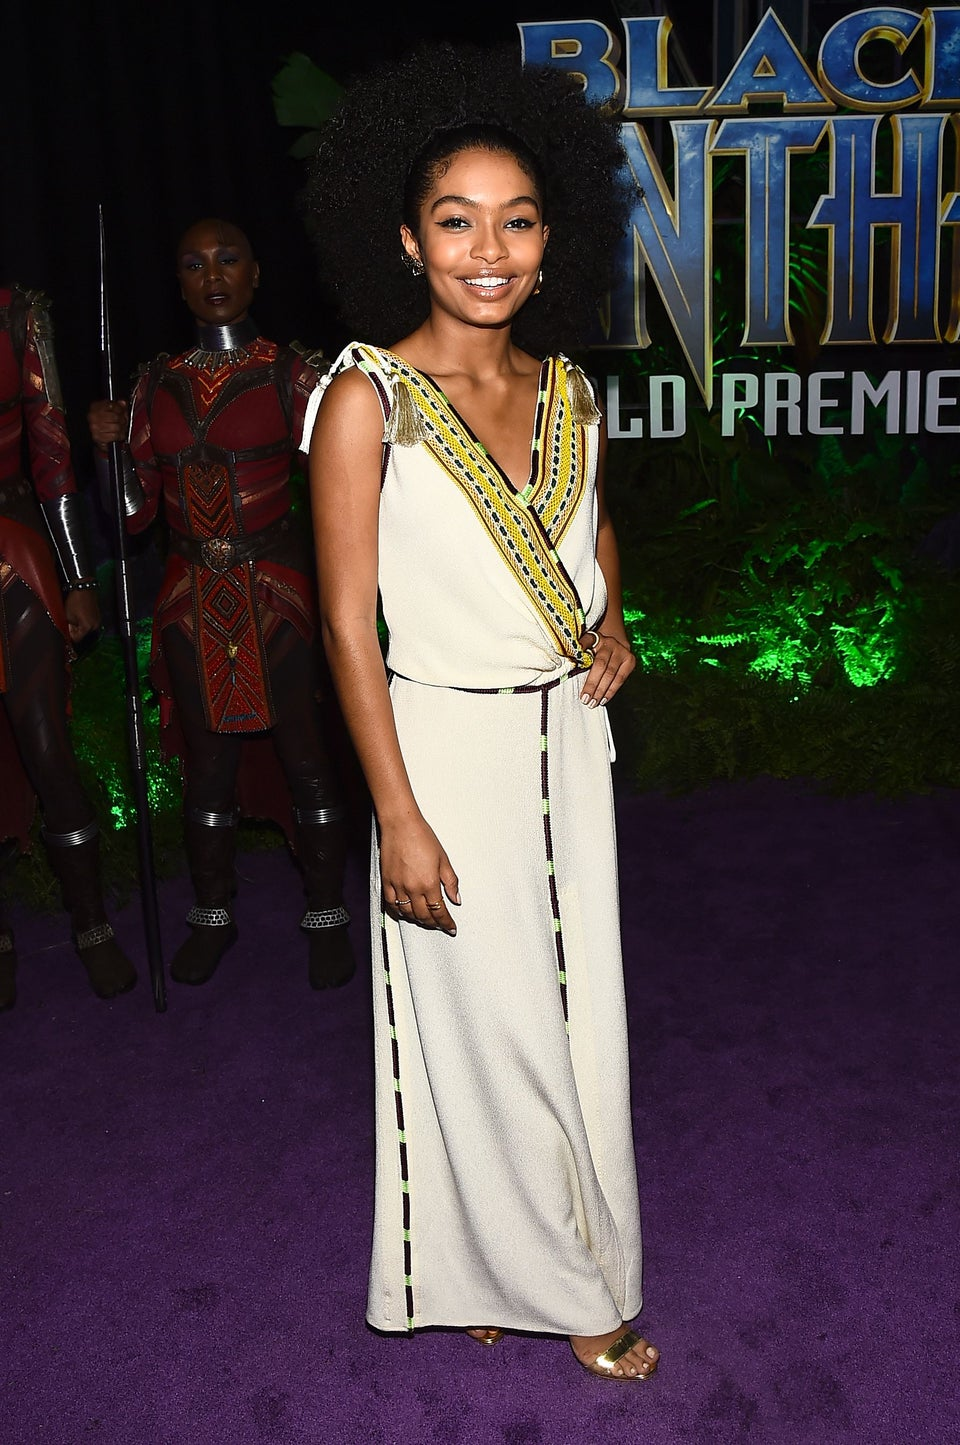 Yara Shahidi Pens Powerful Essay On'Black Panther:' It Gives Us 'Permission To Celebrate Our Diverse Culture'